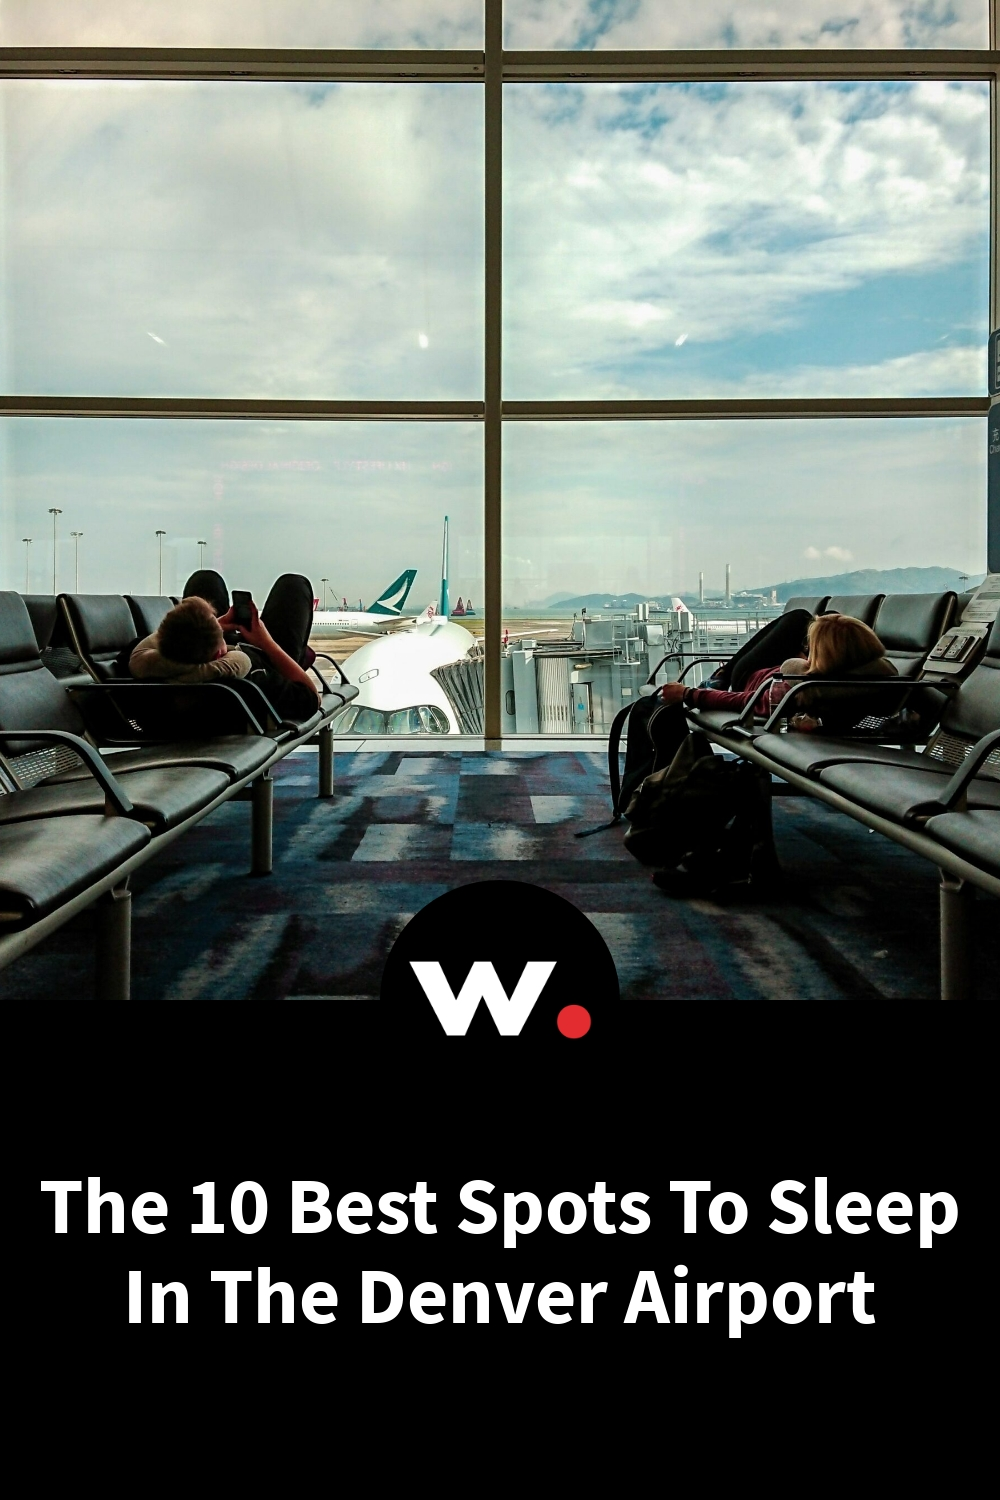 The 10 Best Spots To Sleep In The Denver Airport